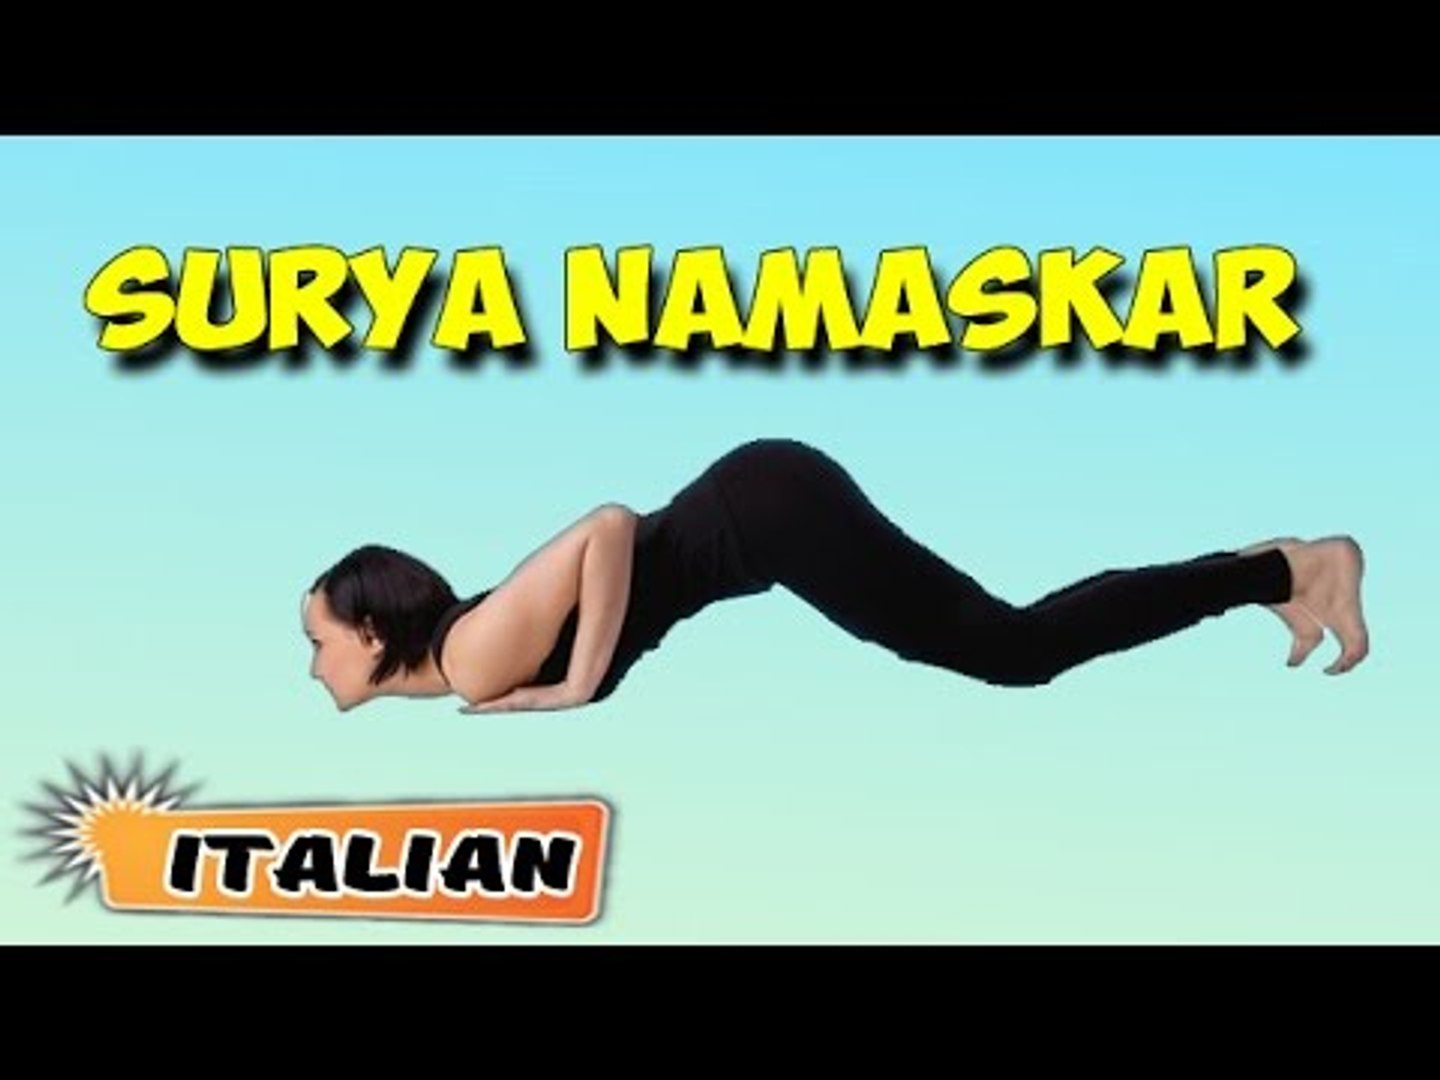 Surya Namaskar | Yoga per principianti | Yoga For Diabetes & Tips | About Yoga in Italian